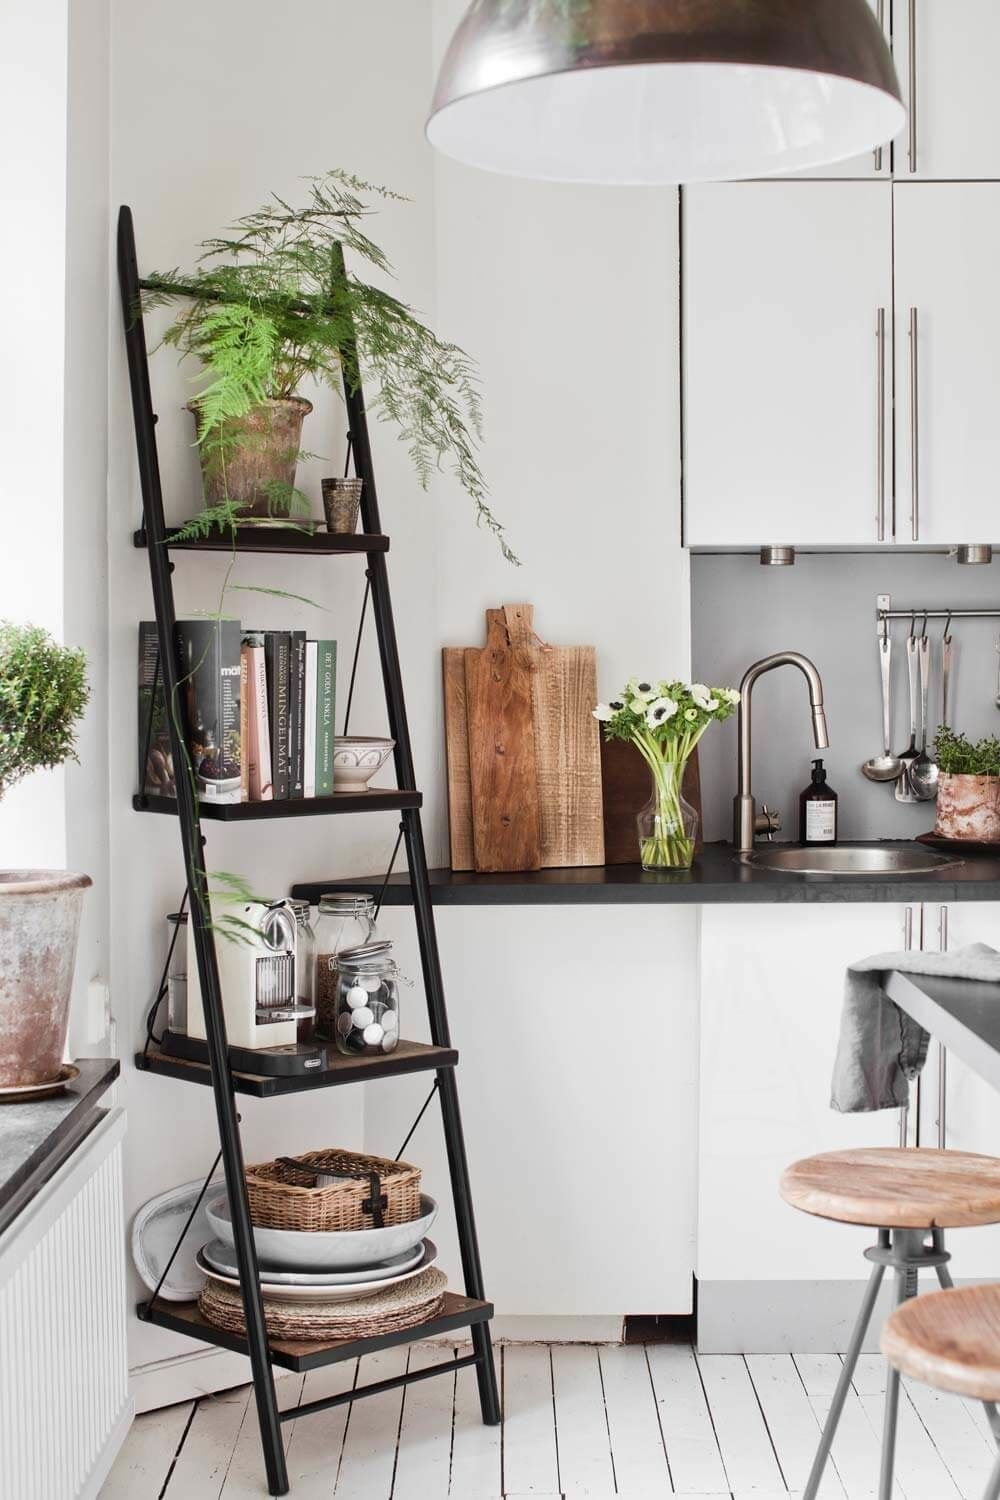 decorating black holes: the 7 most easily forgotten spots | idées